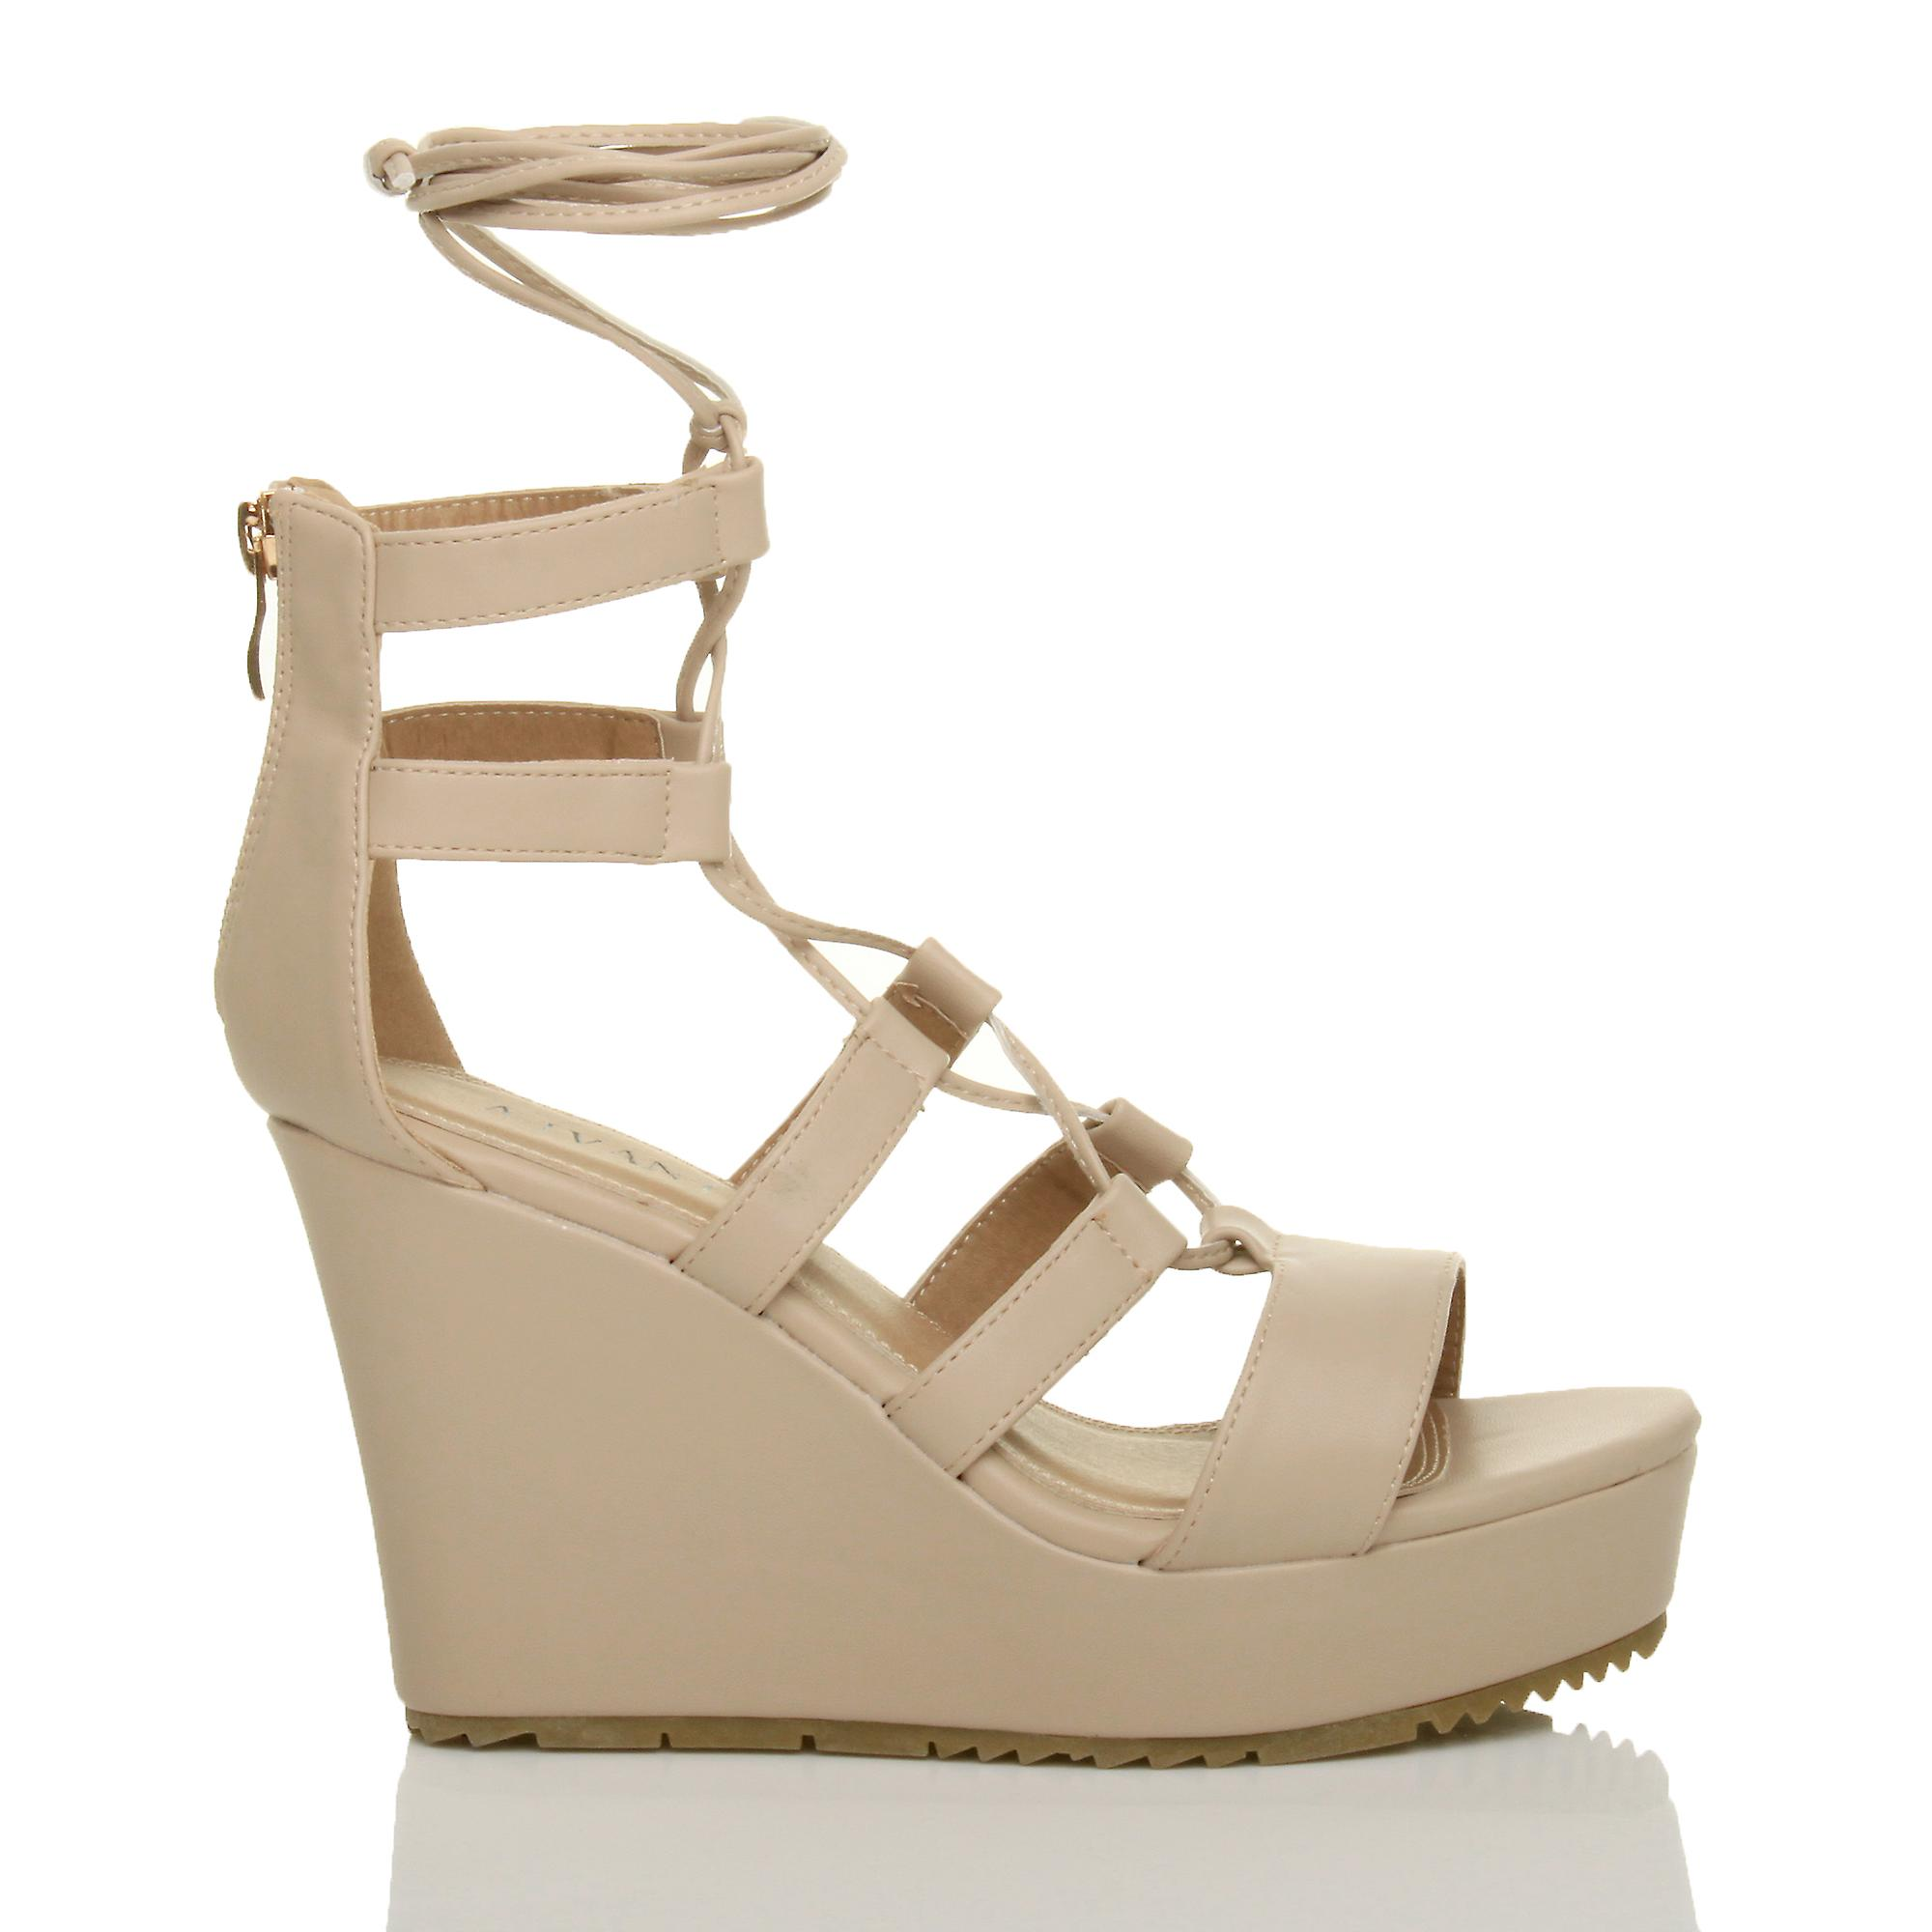 lace ghillie sandals caged shoes high zip Ajvani tie up wedge platform womens gladiator wgA1qX